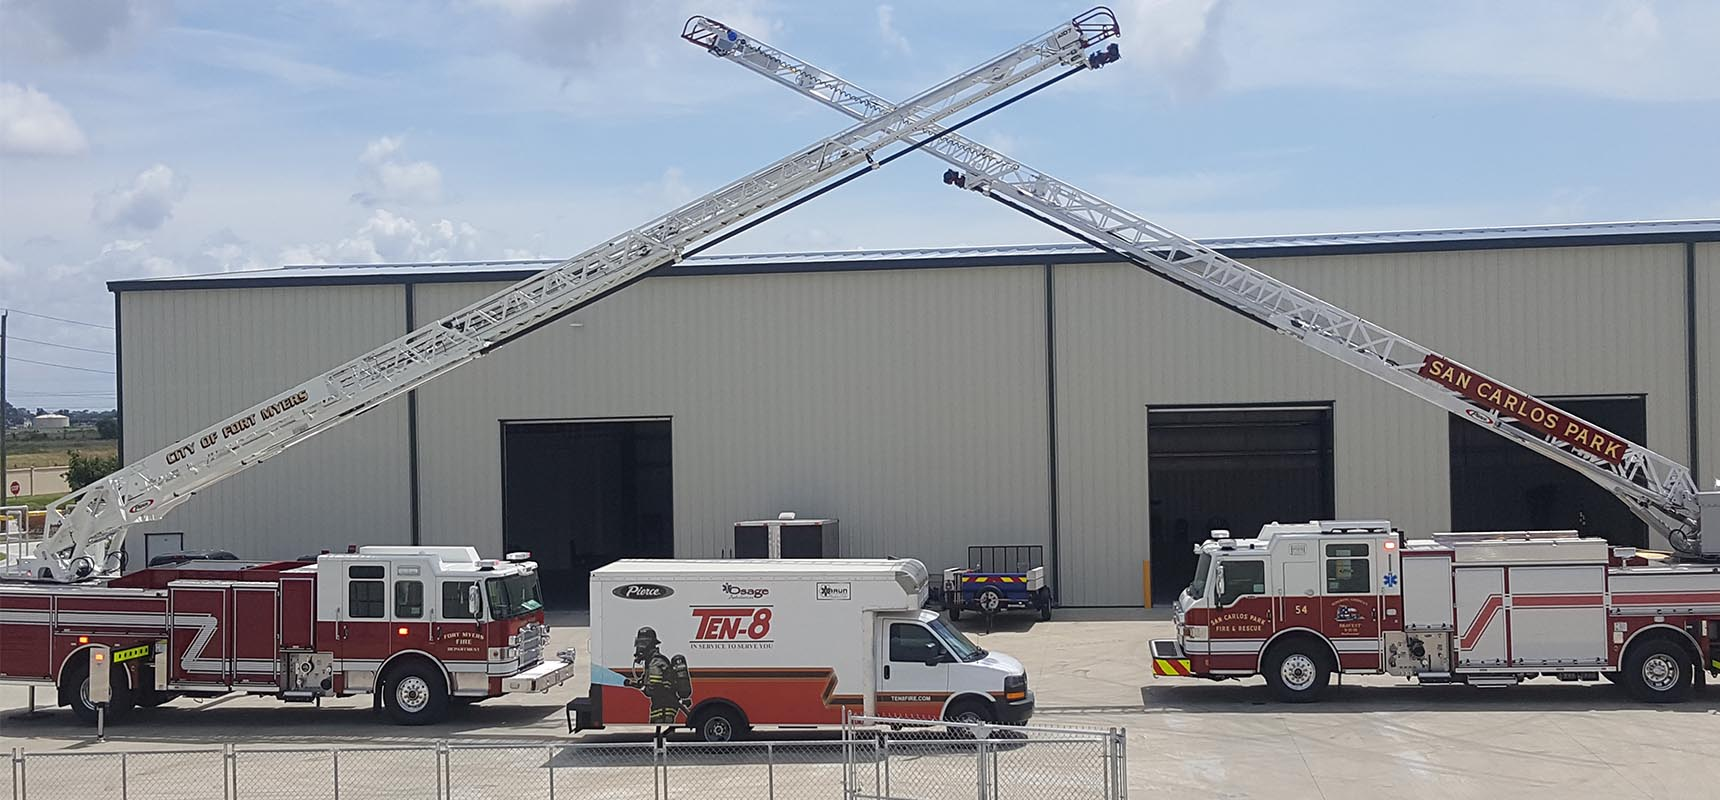 Ten-8 Fire Equipment , exclusive Pierce dealer for Florida and Georgia, has opened a new service center in Fort Myers, Florida